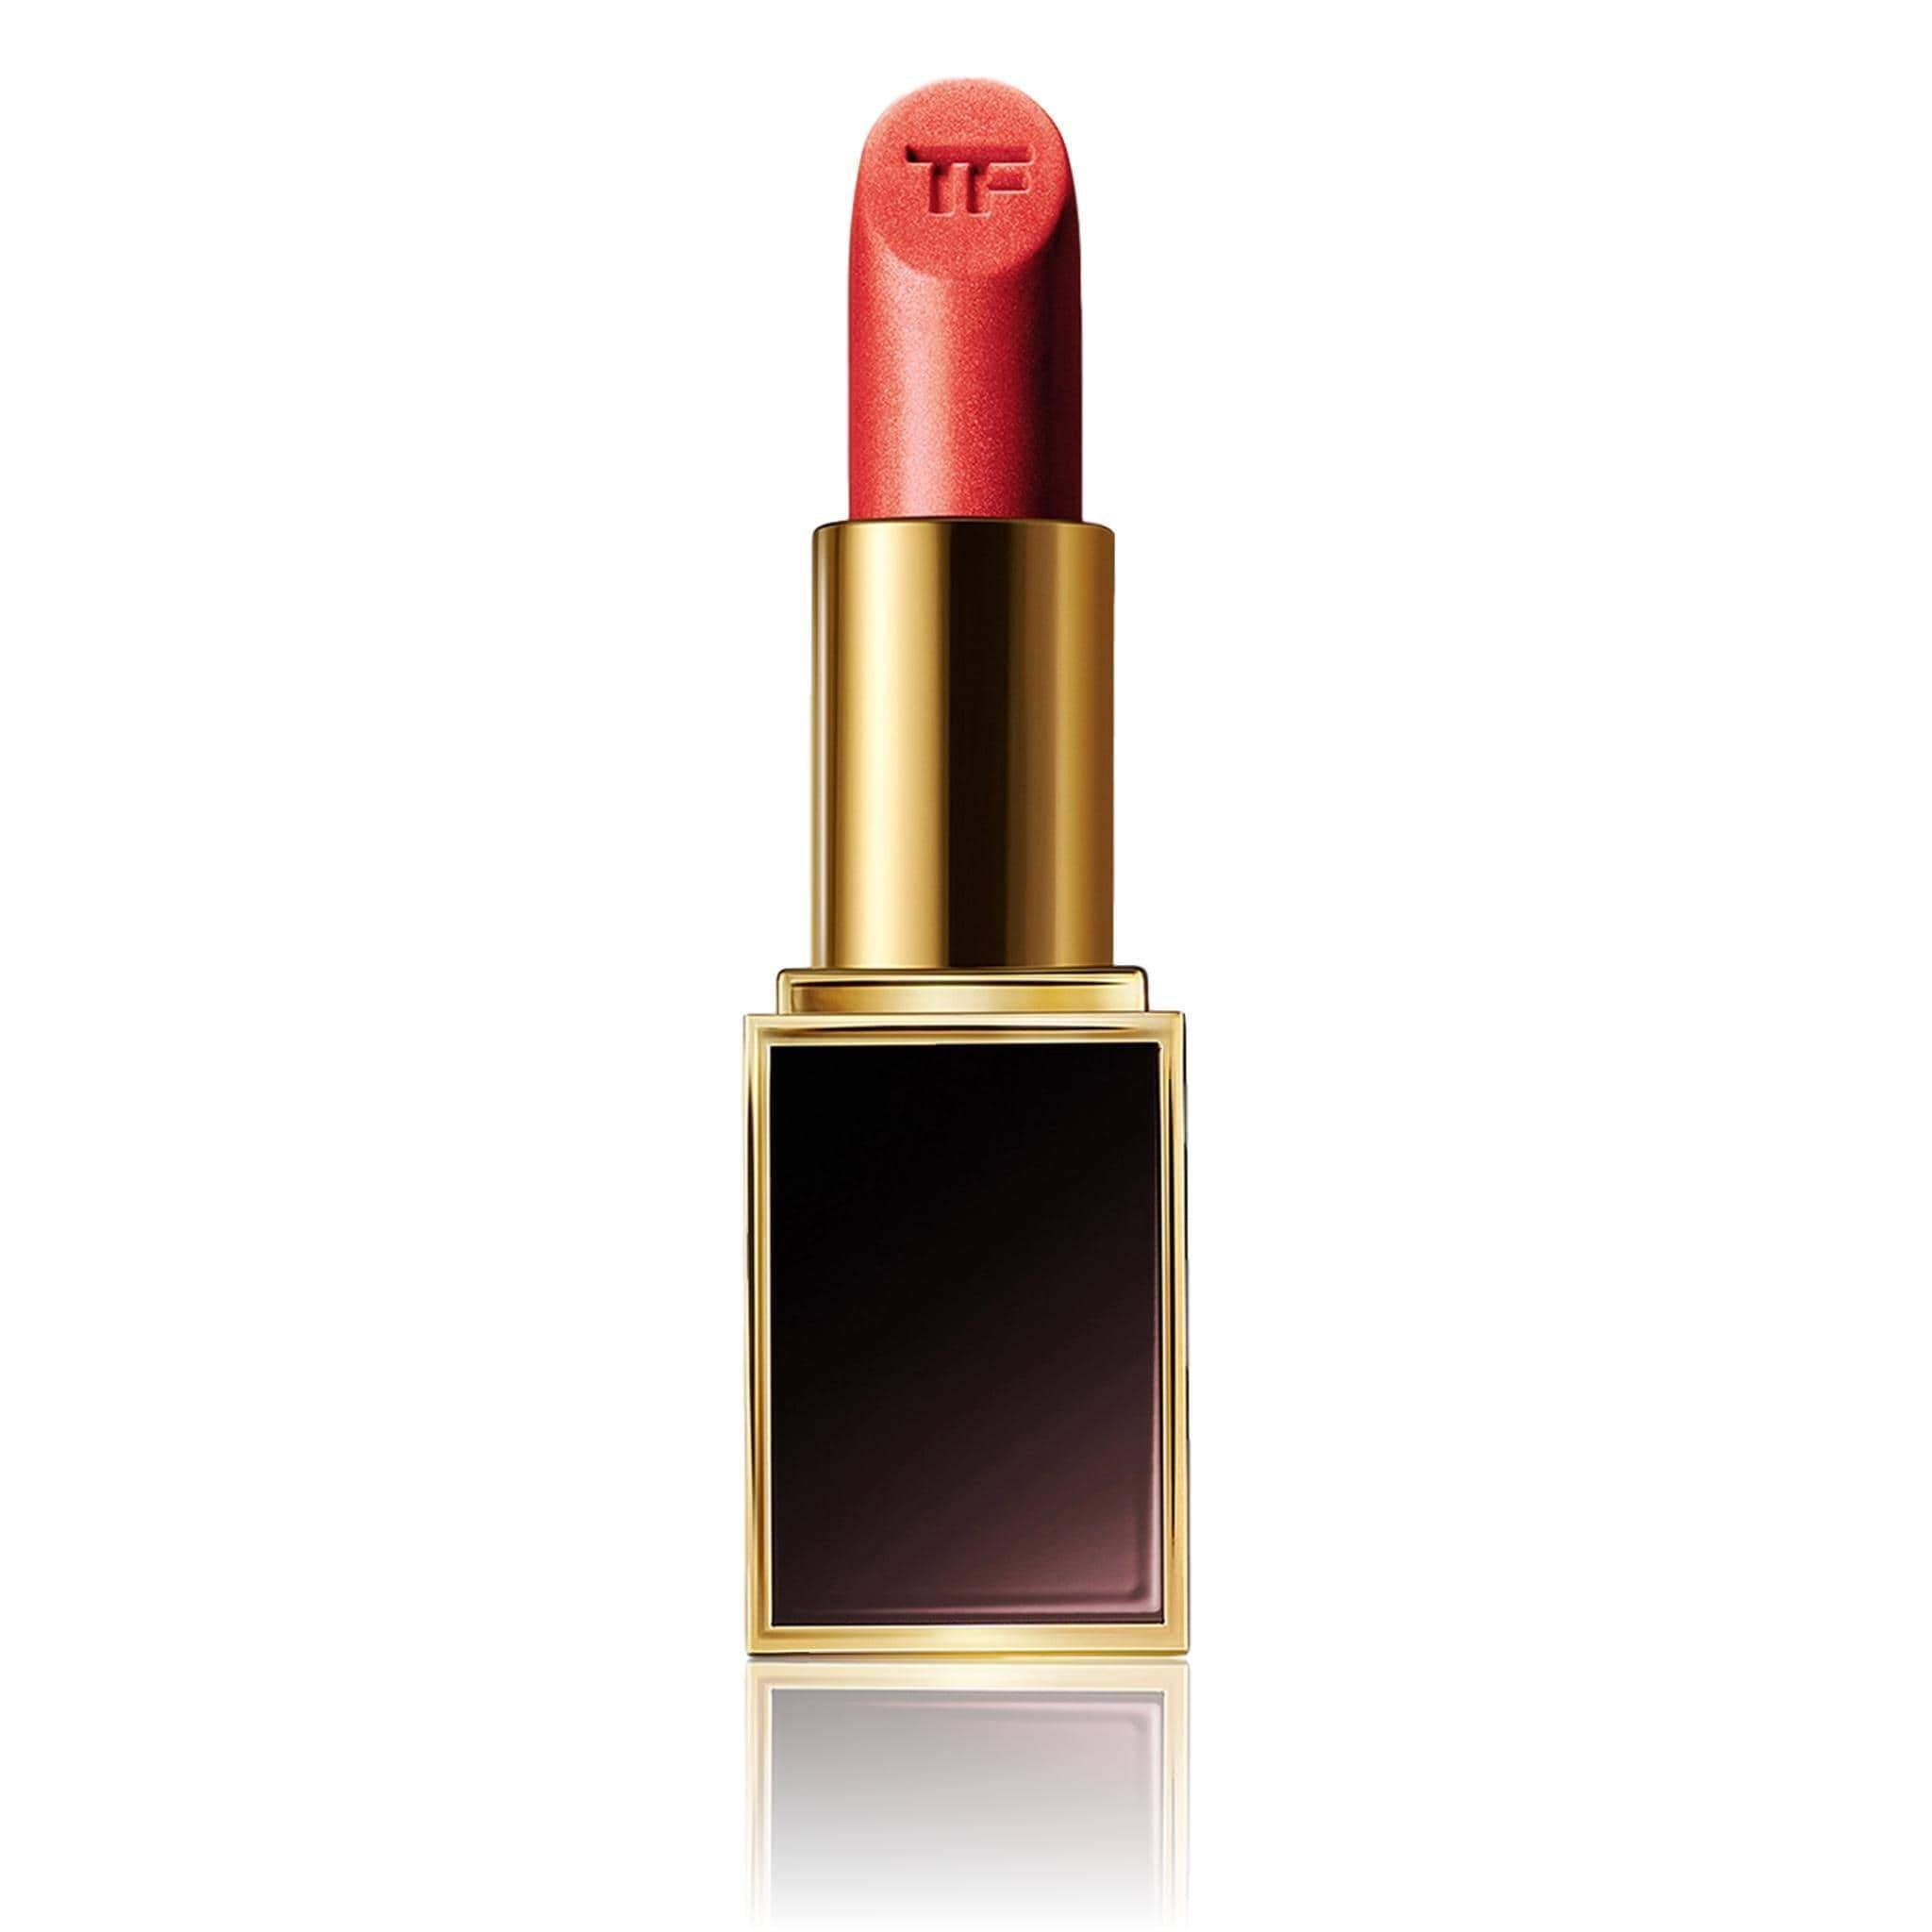 Tom Ford Lip Color Clutch Sized, Lipstick, London Loves Beauty